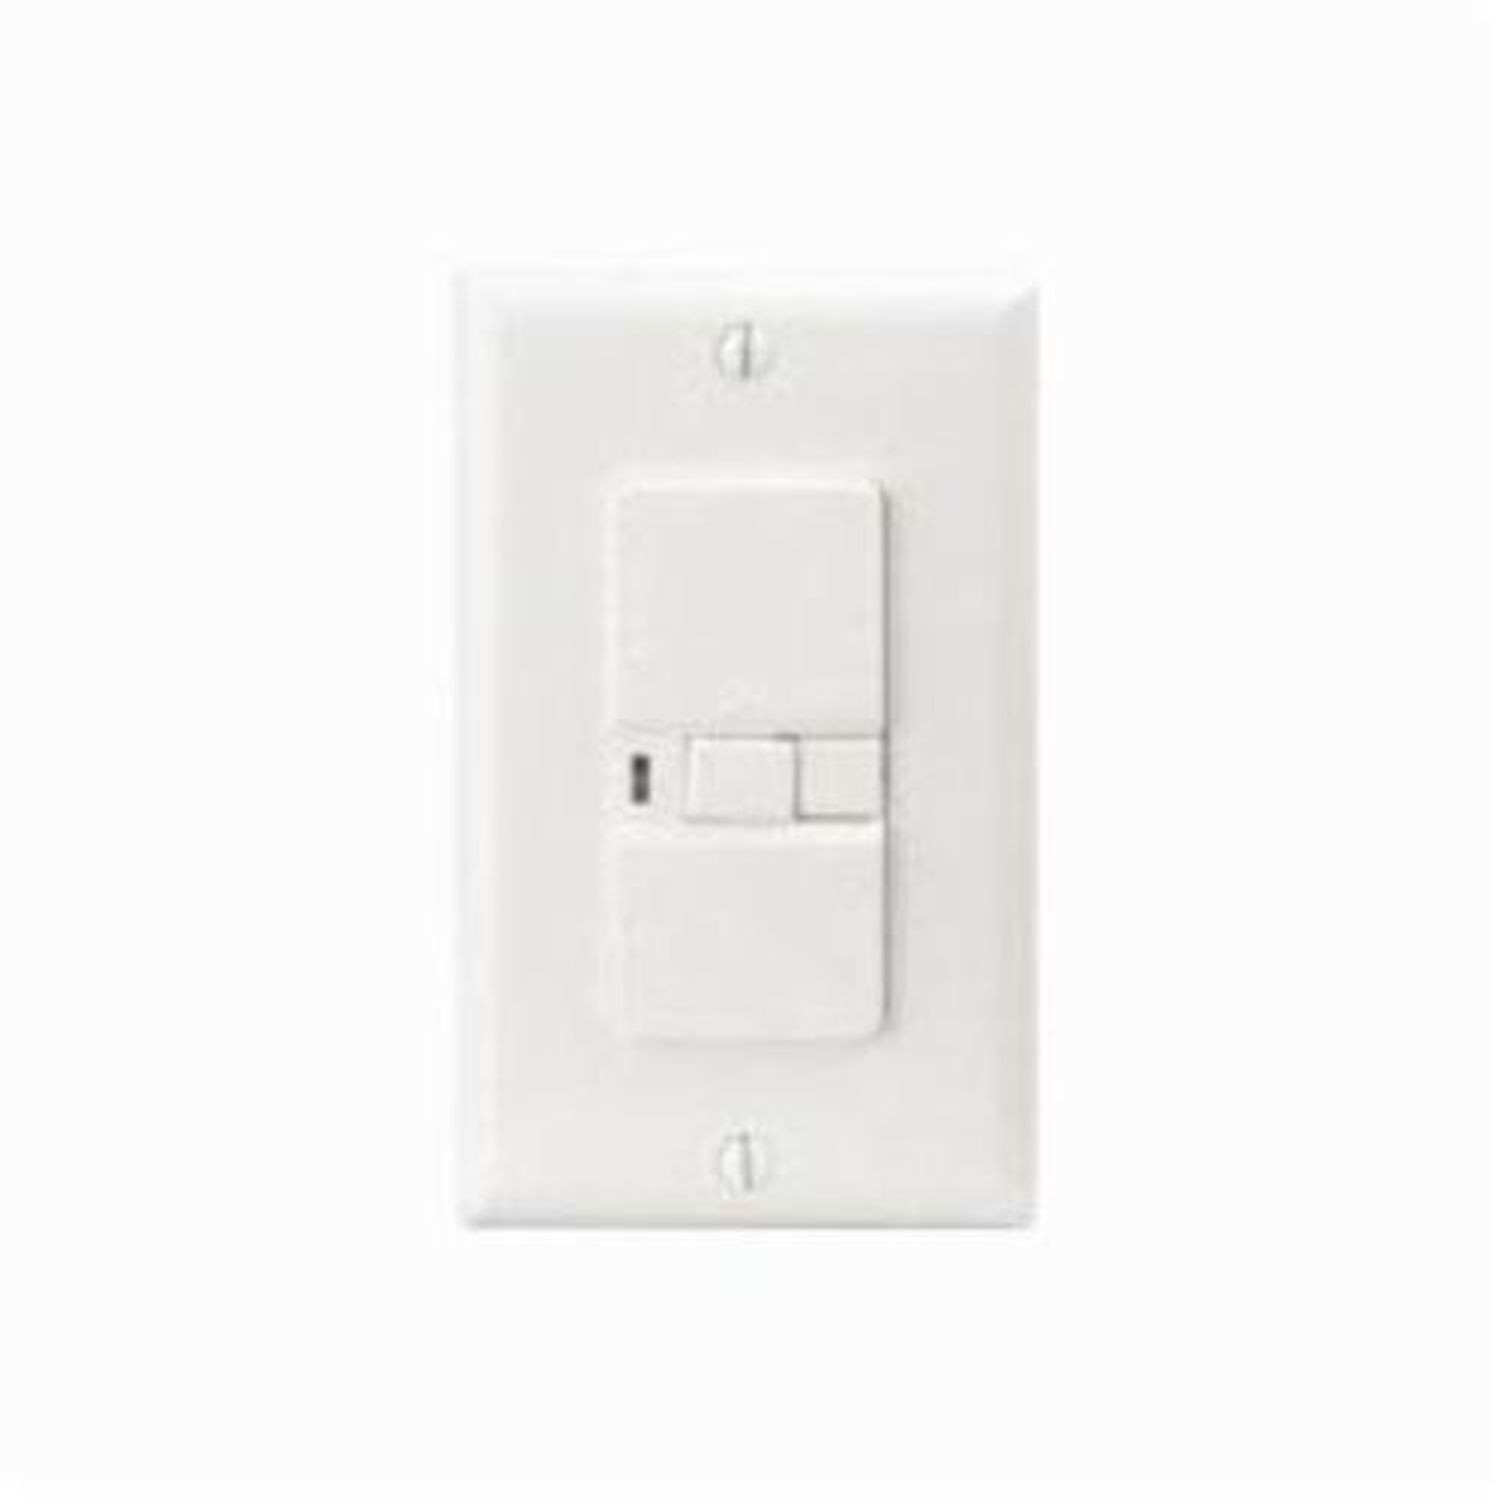 Eaton Wiring Devices Arrow Hart Vgfd20w Blank Face Gfci Receptacle Receptacles 125 Vac 20 A 2 Poles 3 Wires White